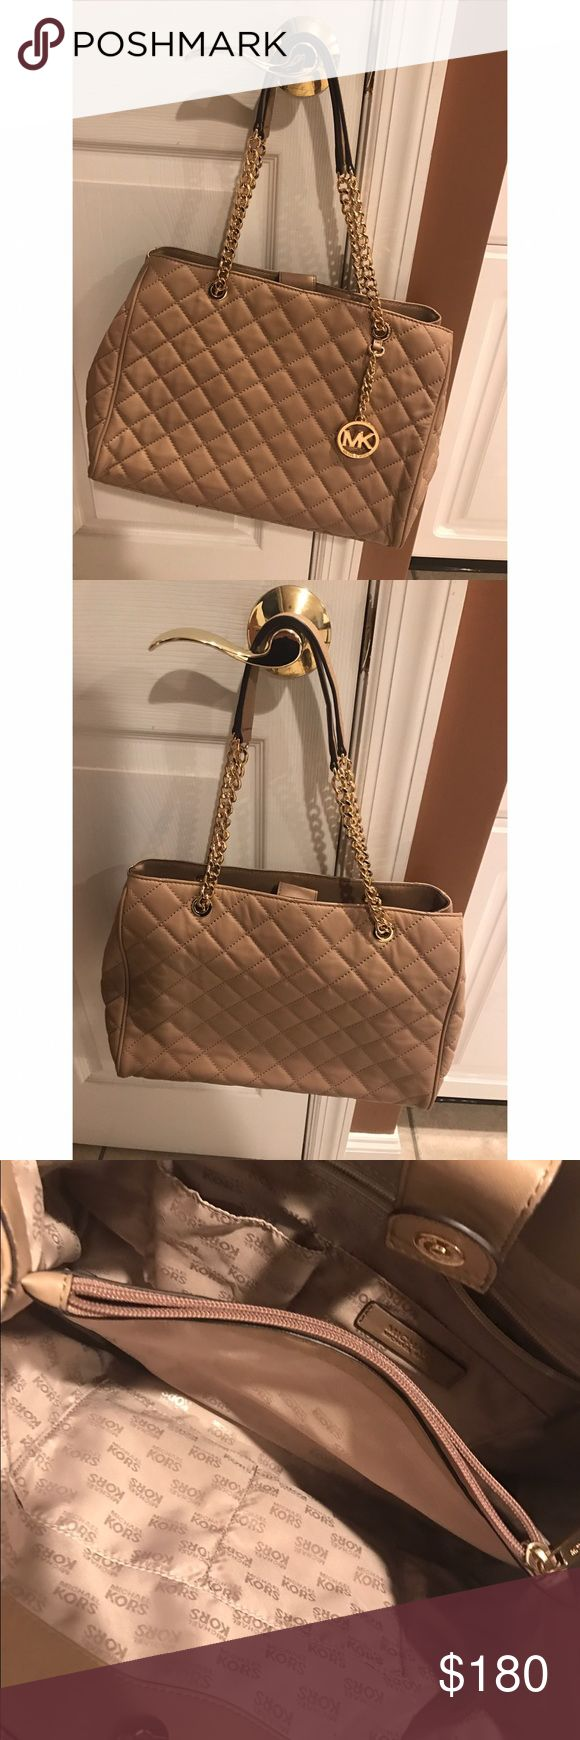 ❤MICHAEL KORS SUSANNAH TOTE❤USED 1X!!!!🔥 Basically BRAND NEW without tags attached Michael Kors Susannah tote/shoulder bag in dark khaki! Such a beautiful bag!😍😍I fell in love with it when I bought it but, unfortunately, I don't use it like I thought I would 🤦🏻‍♀️ (only used it once!!!) so I want someone else to be able to enjoy it instead!! Barely any wear and tear💁🏻🎉🤑 Michael Kors Bags Shoulder Bags